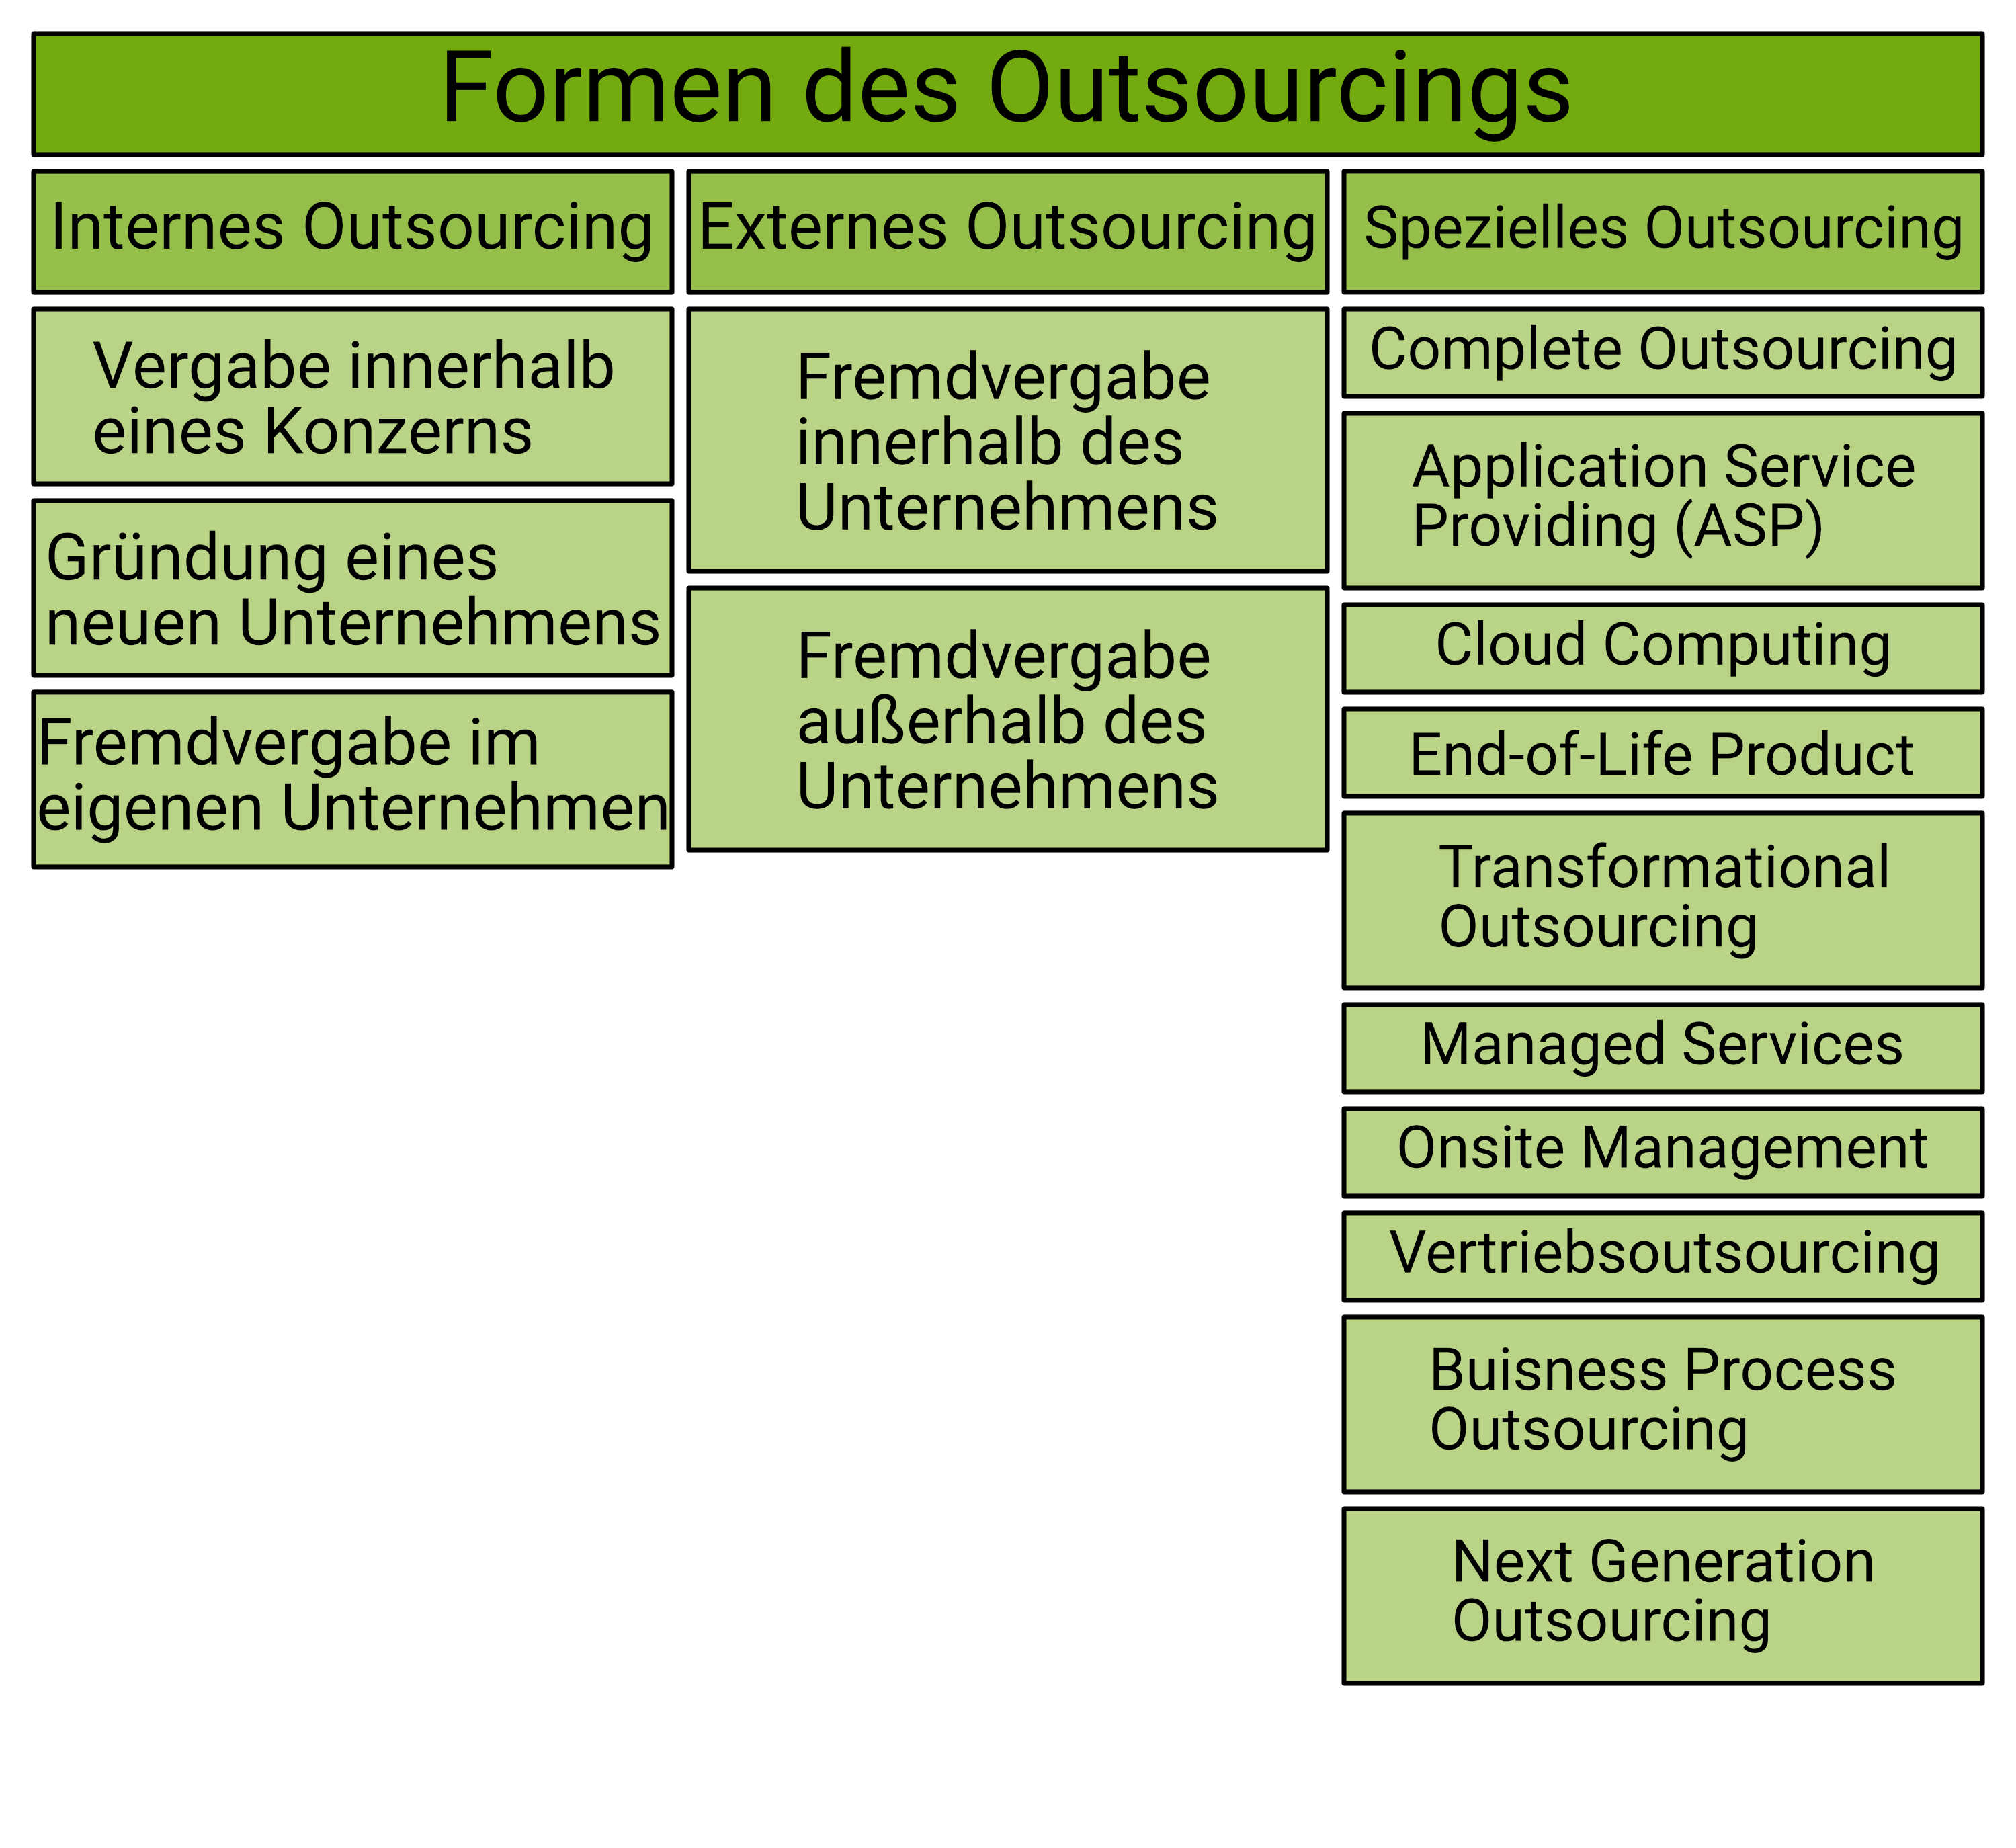 Formen des Outsourcings